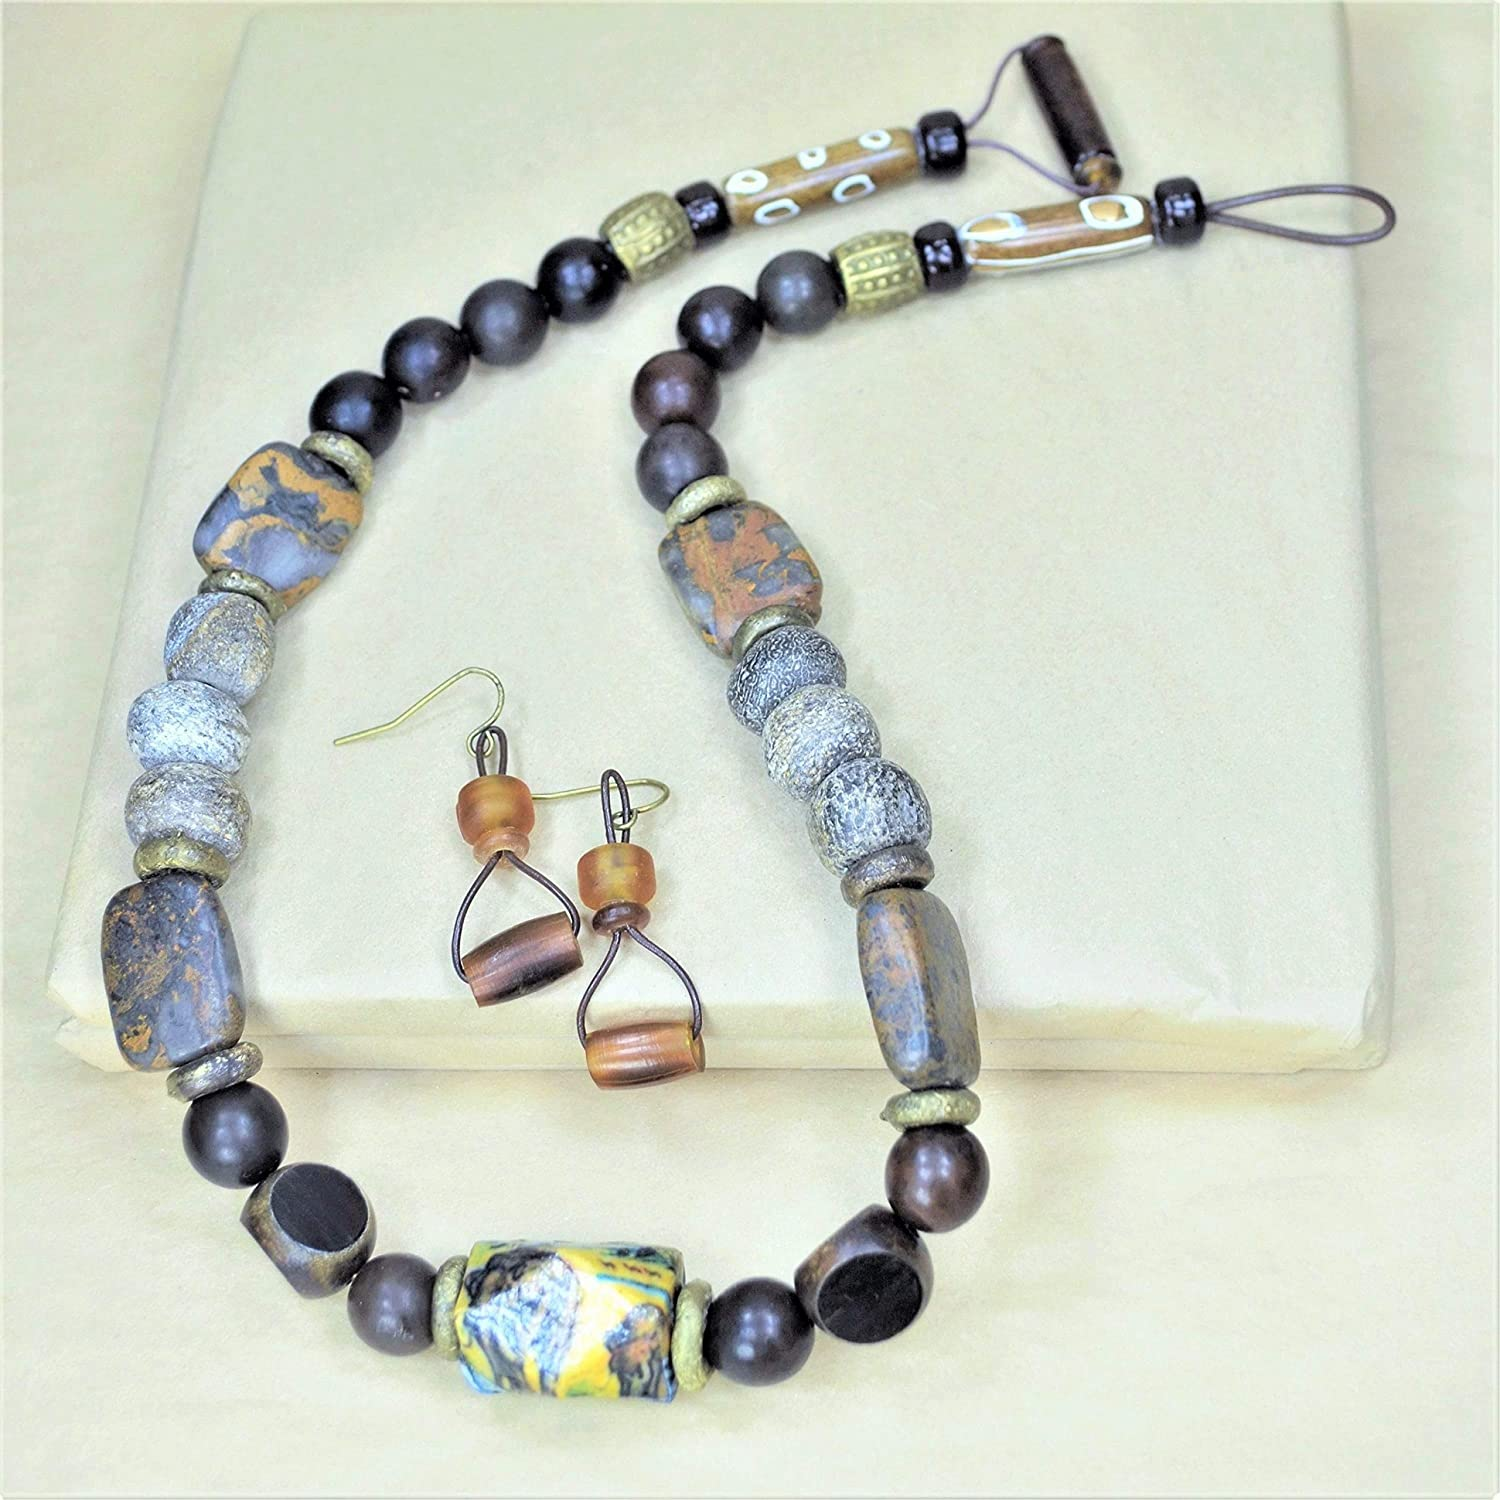 Back to Africa Woolly Mammoth Necklace w/Earrings